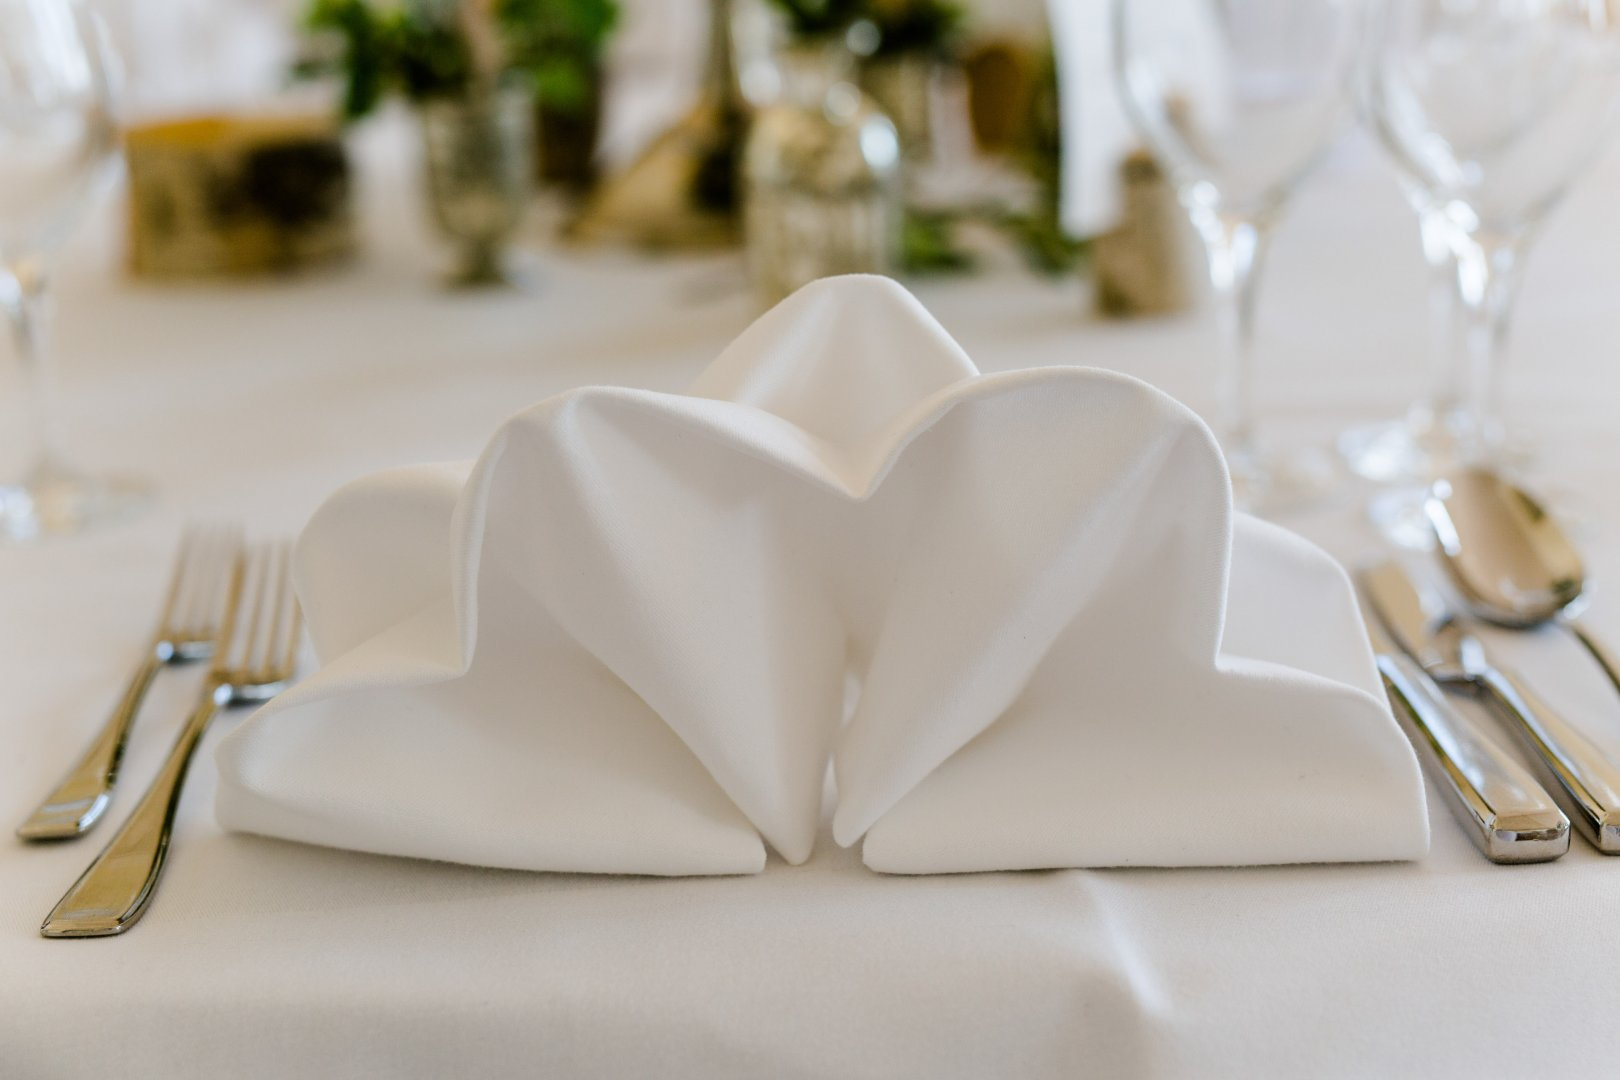 White Napkin Tablecloth Wedding favors Linens Tableware Table Wedding reception Ceremony Party favor Home accessories Party supply Wedding Heart